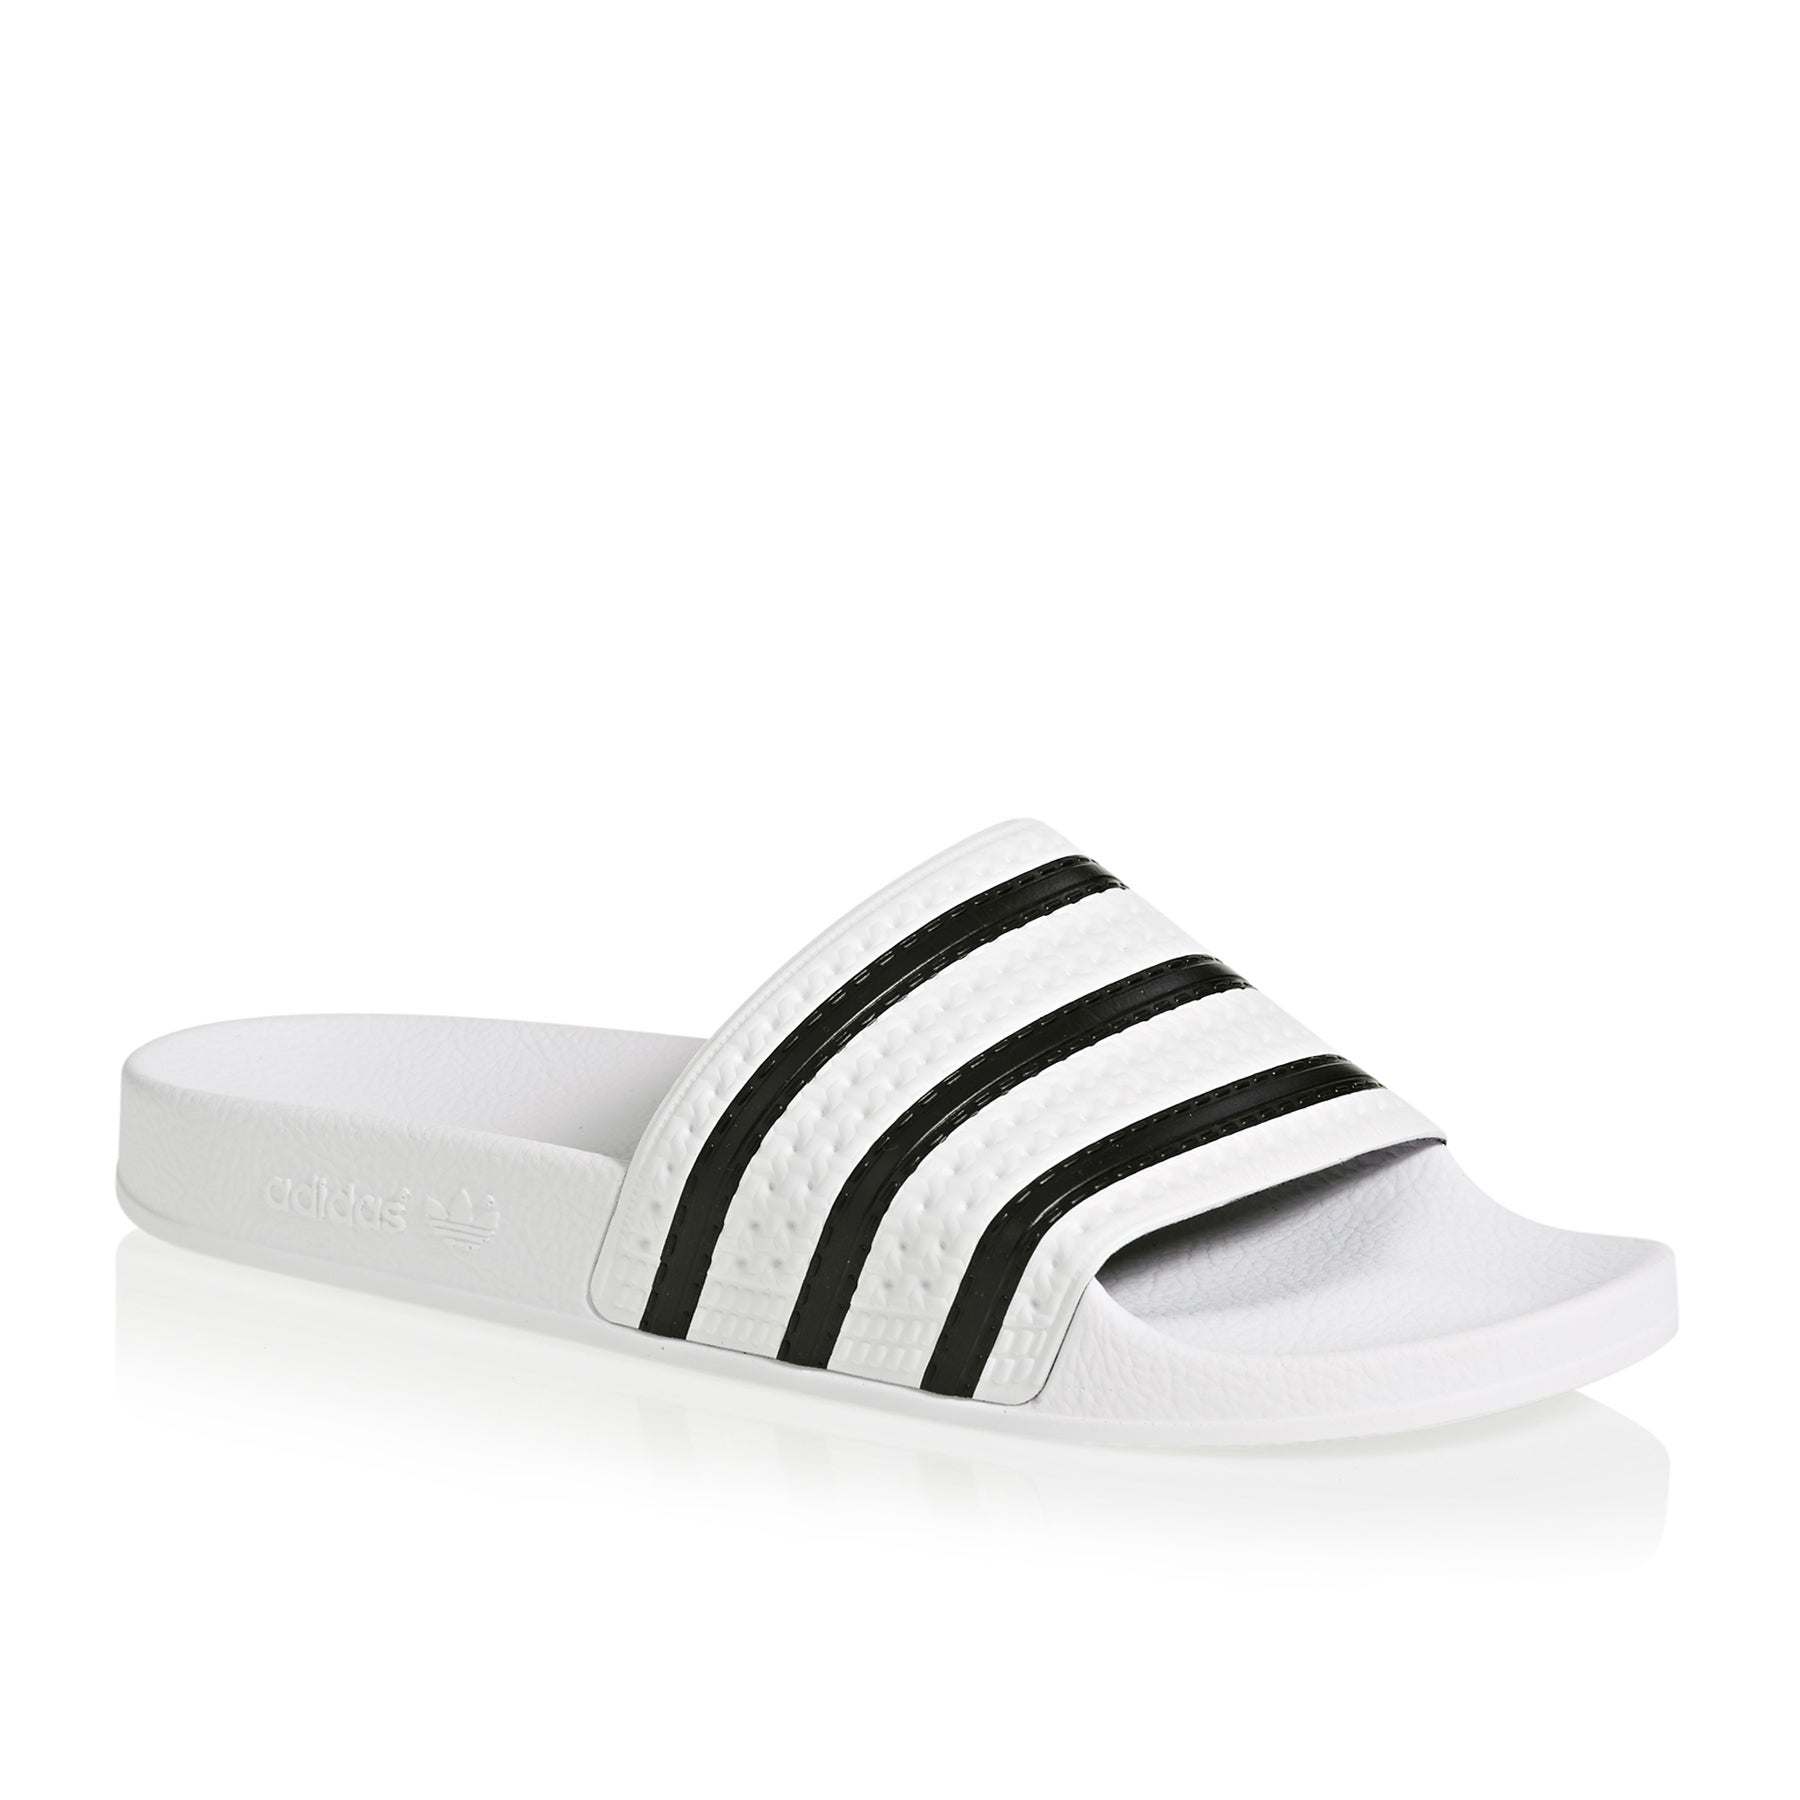 size 40 95a85 8d23e Adidas Originals Adilette Sandals White All Sizes